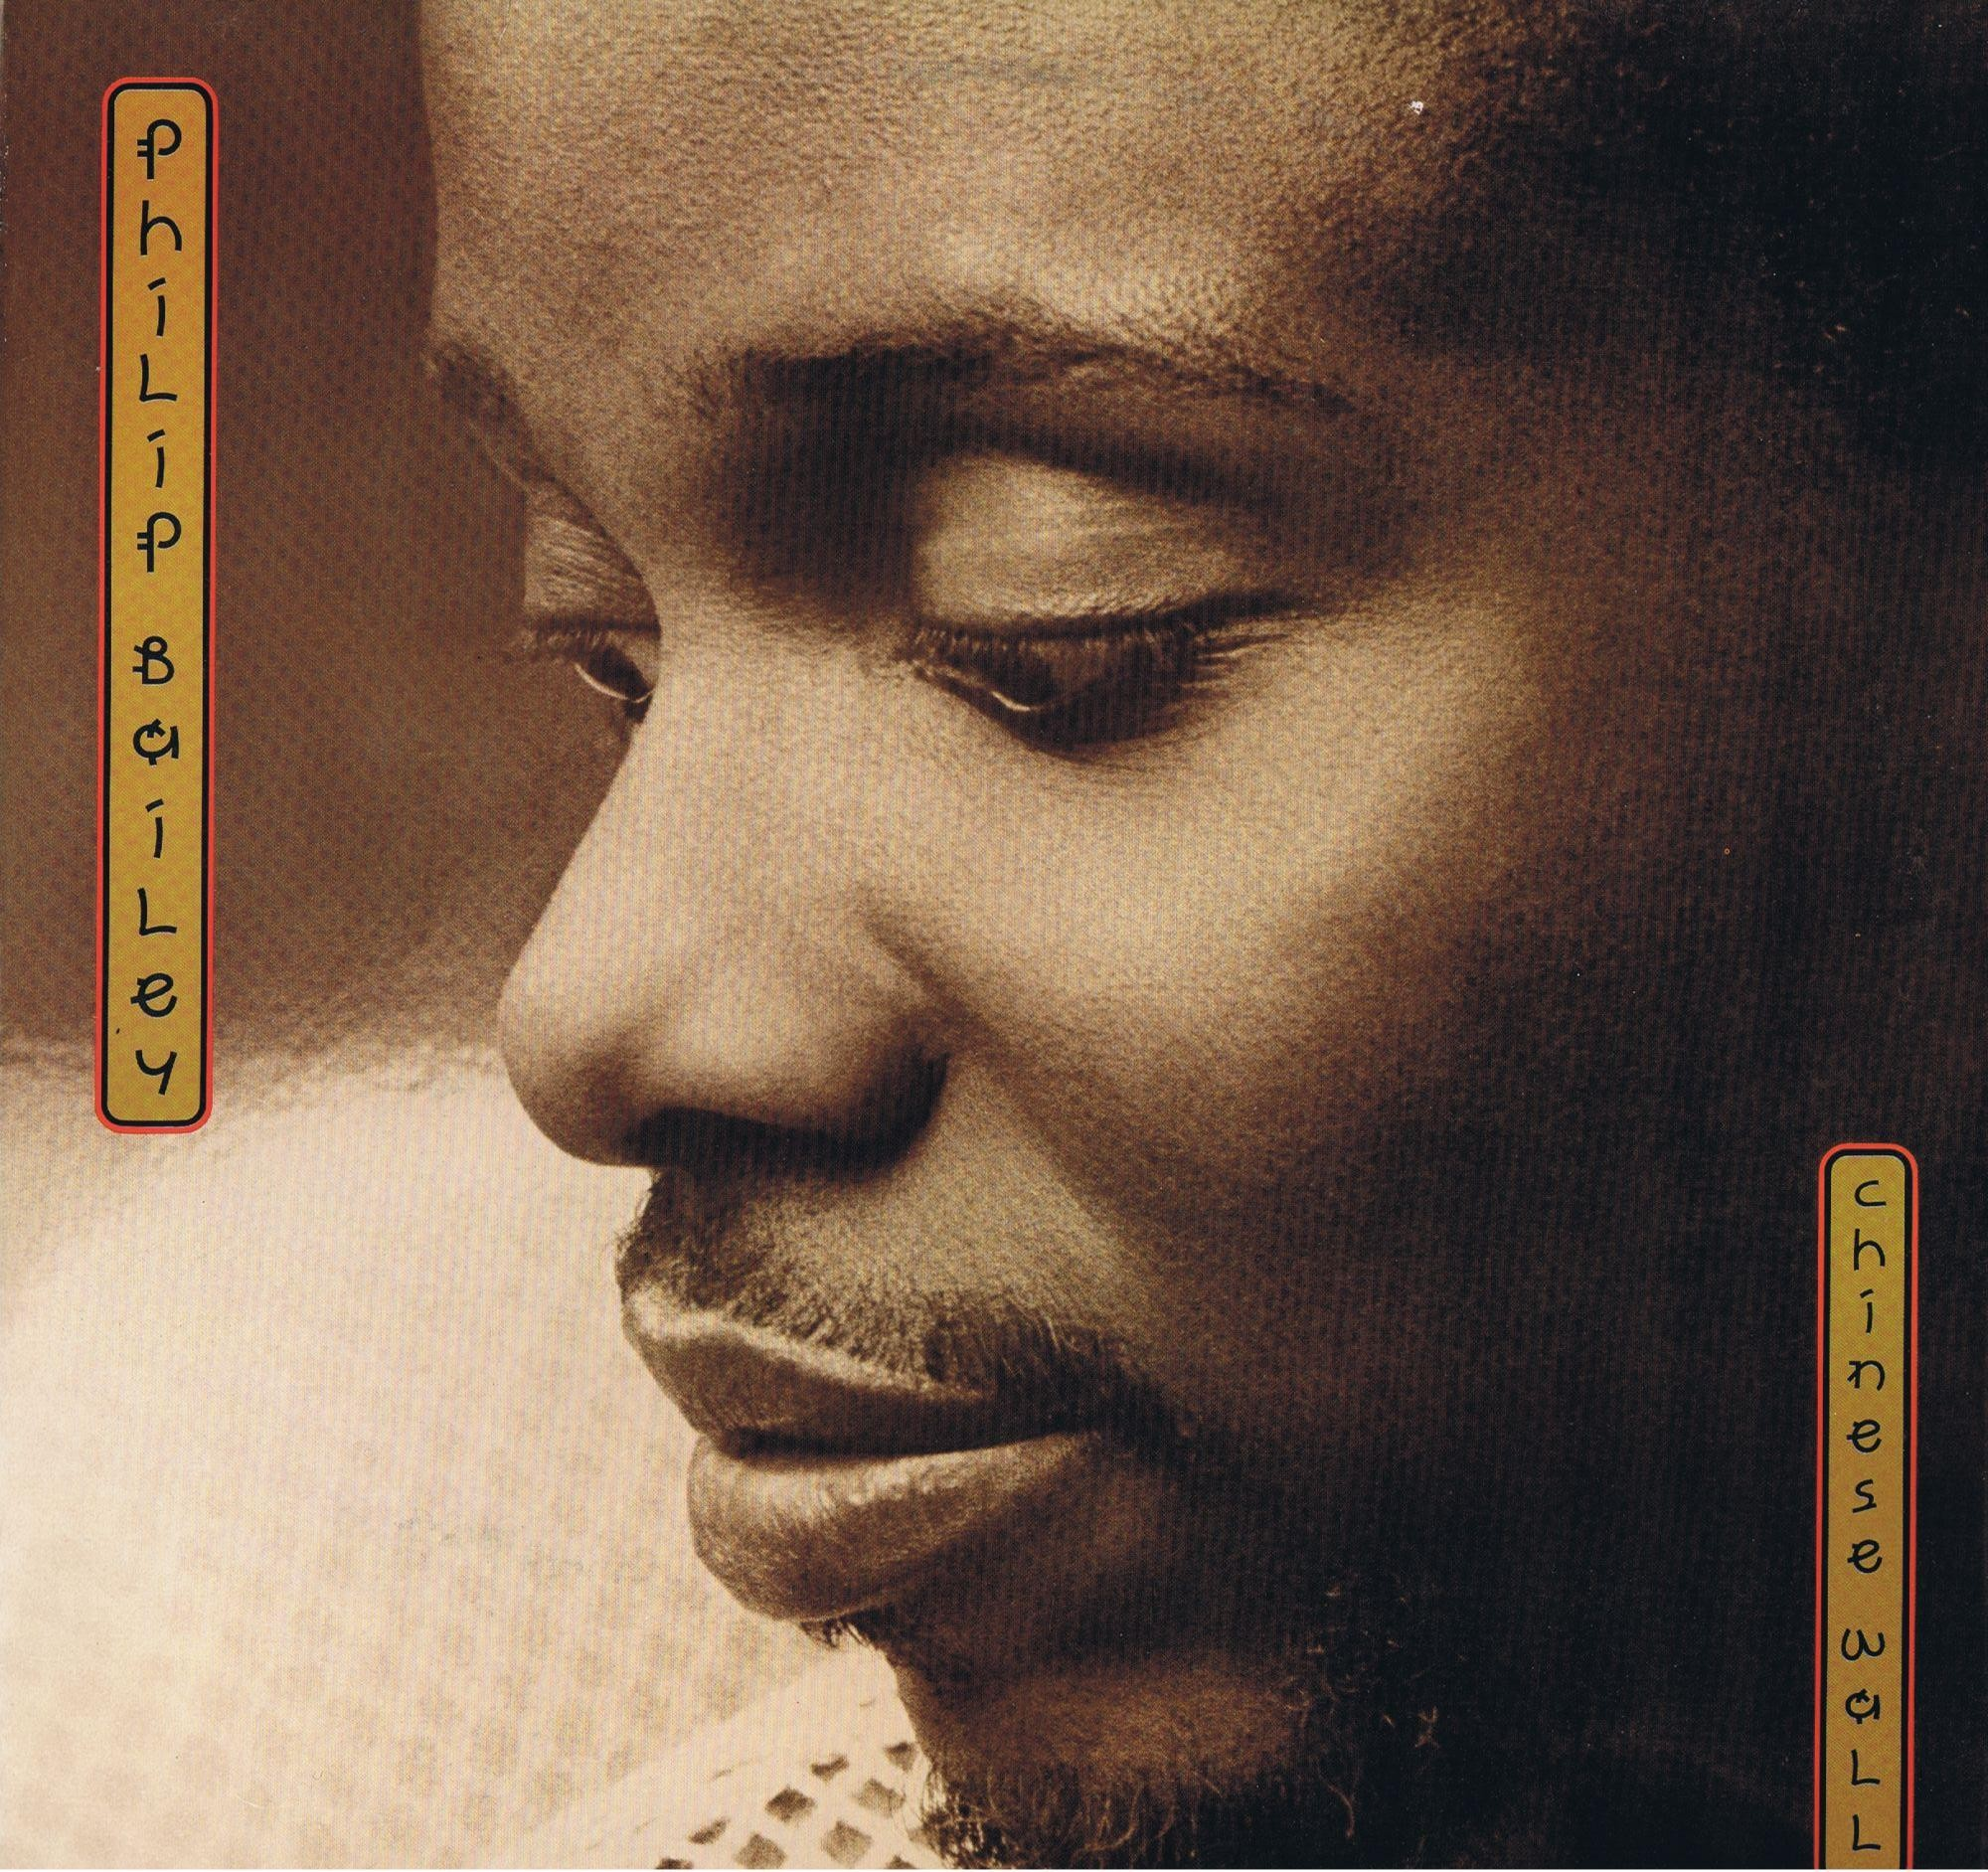 Philip Bailey Chinese Wall Cd Music Columbia